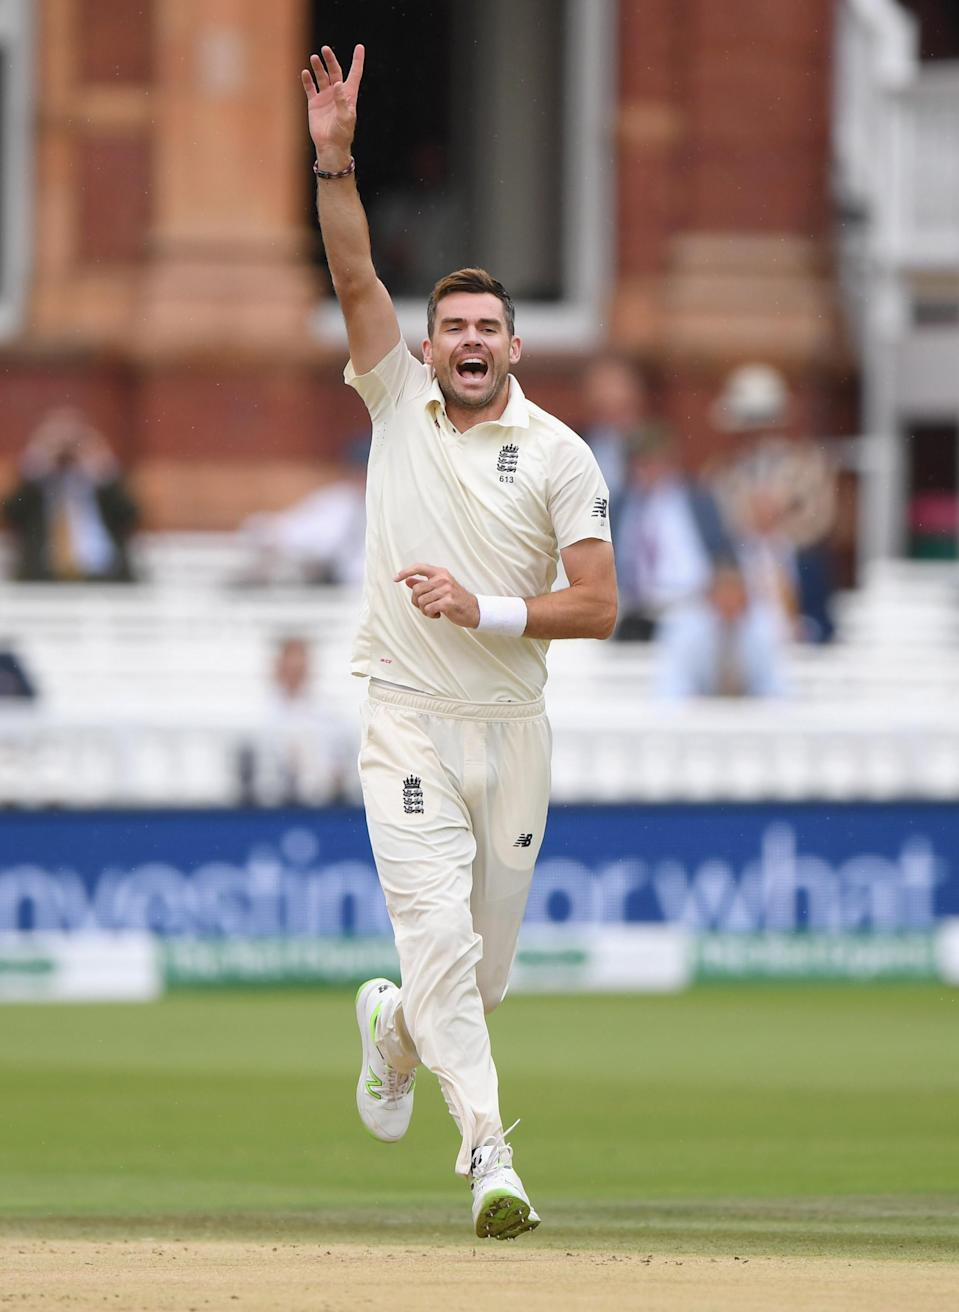 <p>James Anderson is on the verge of eclipsing Glenn McGrath and becoming the highest wicket-taking pacer in Tests. He swings the ball both ways with military precision and control. No Indian batsman, barring Kohli, could negotiate him properly. </p>